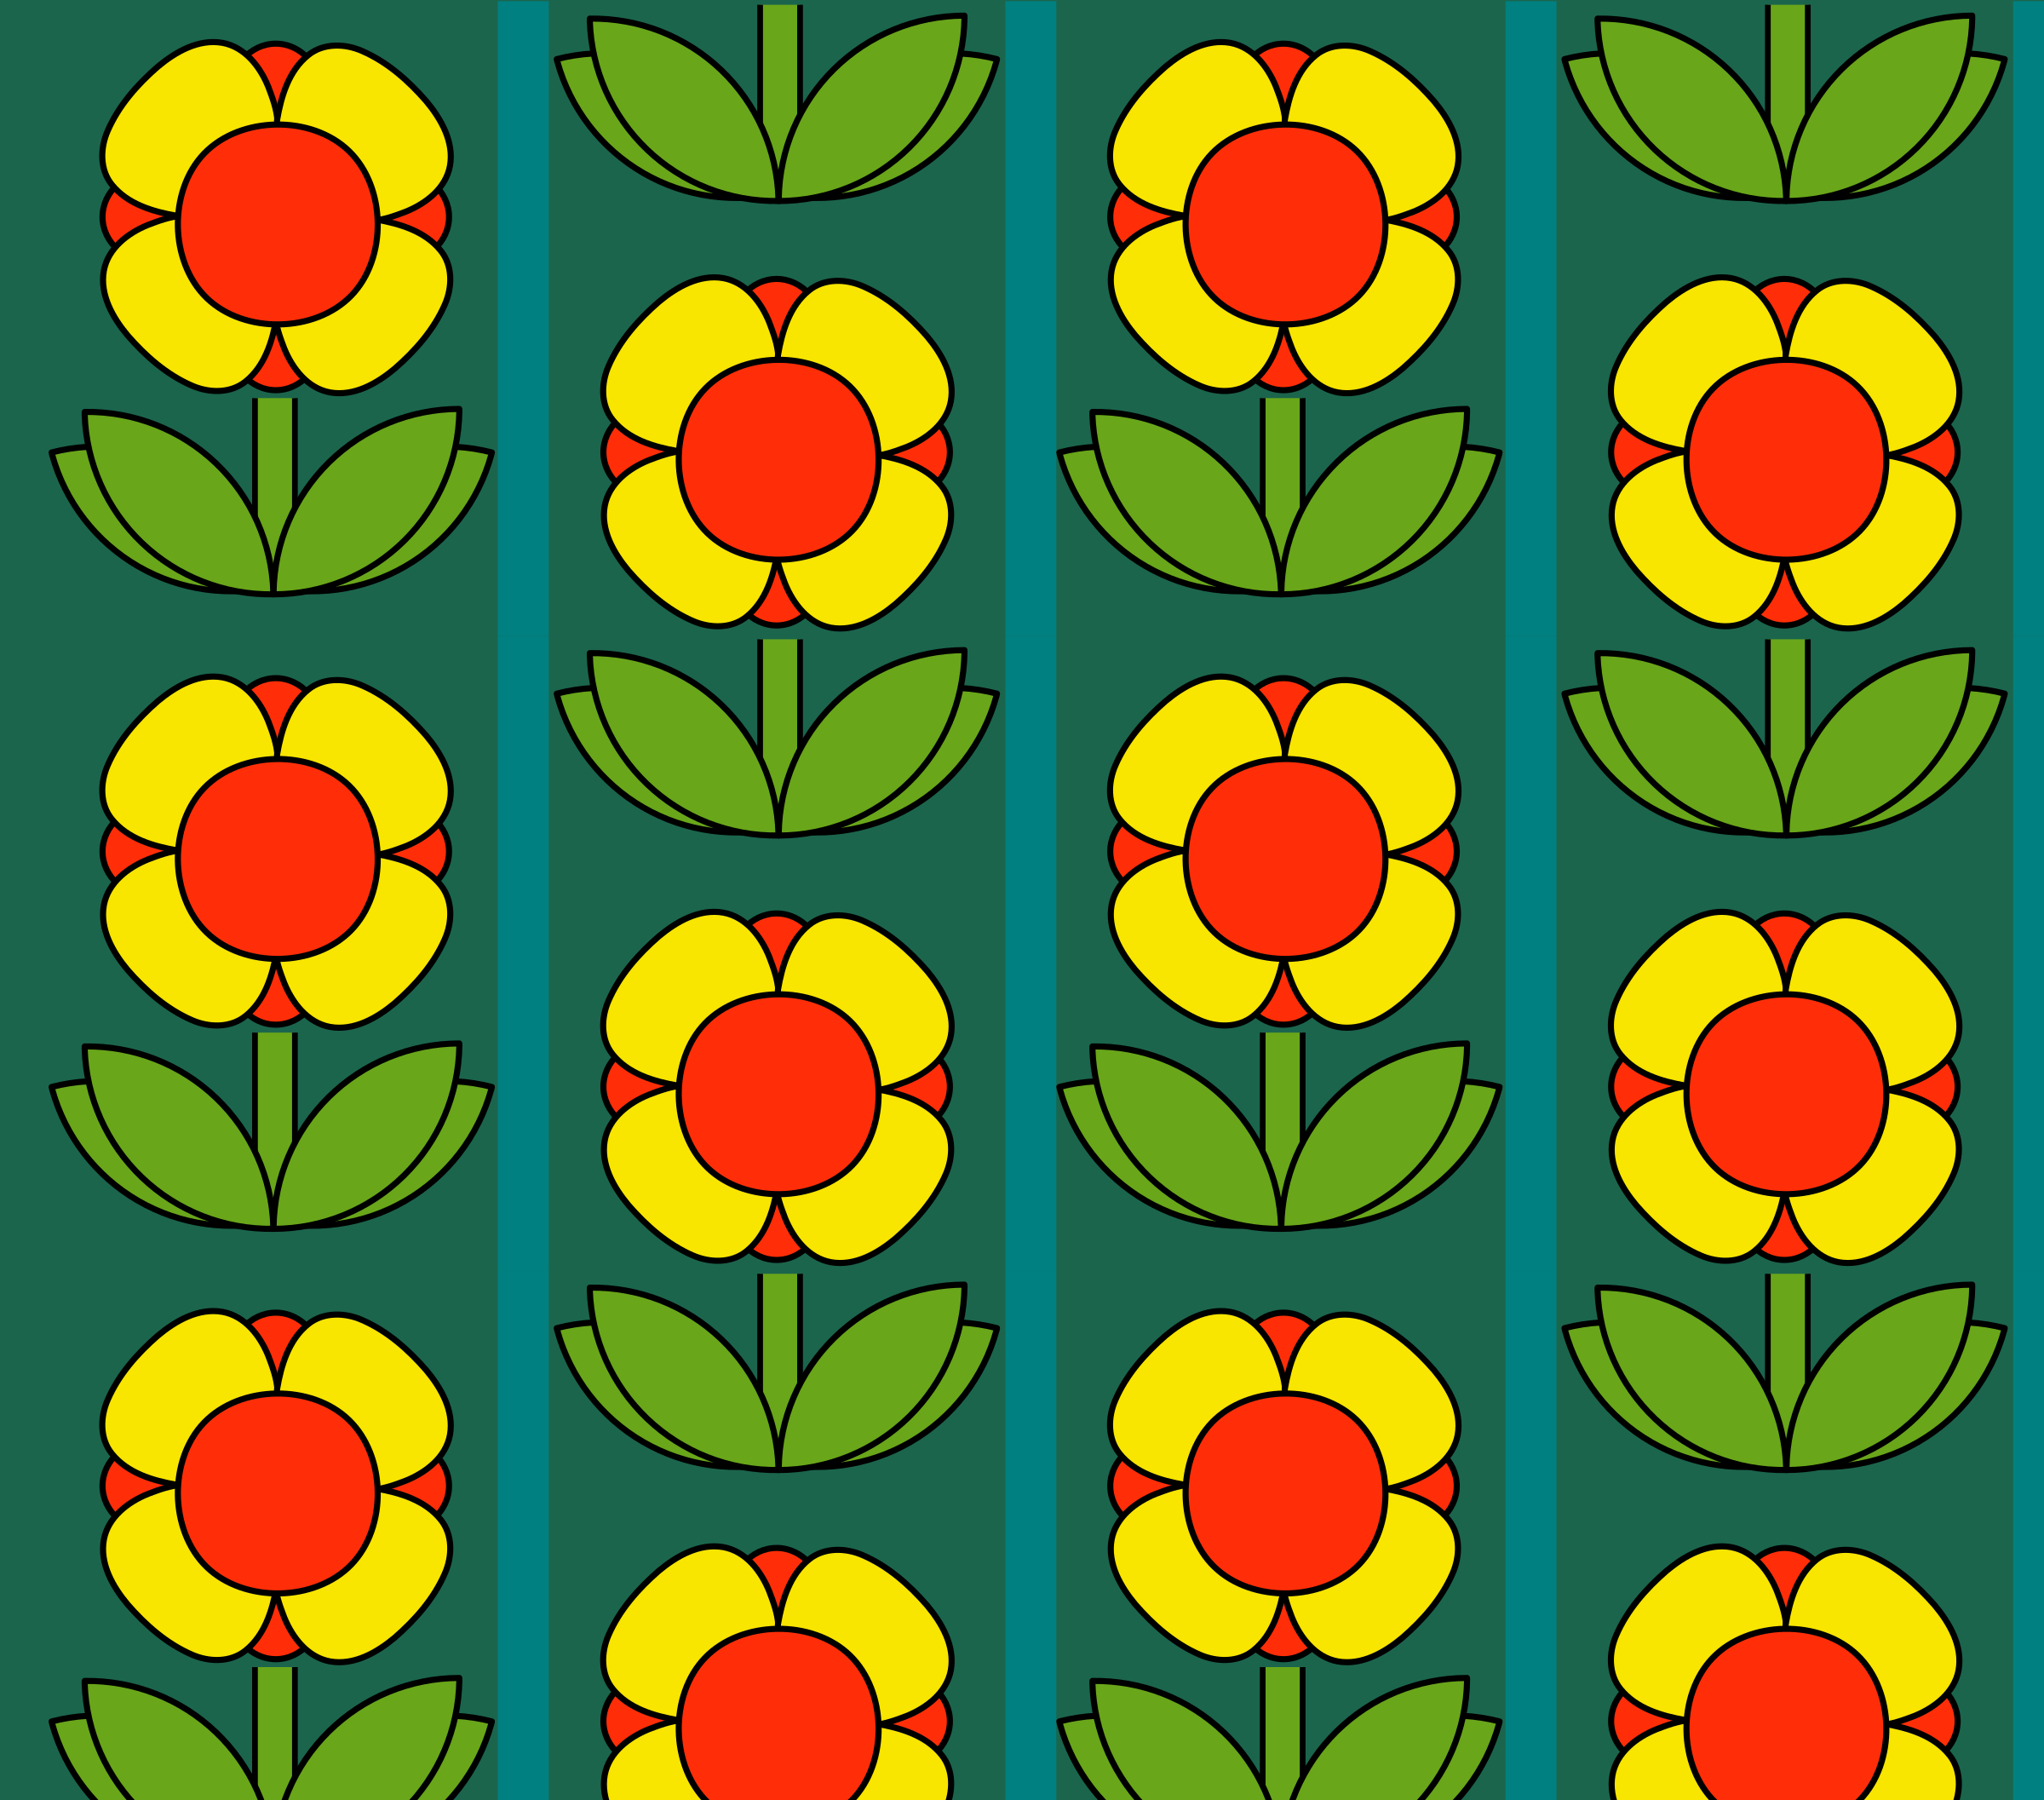 Retro flowers pattern by anarres